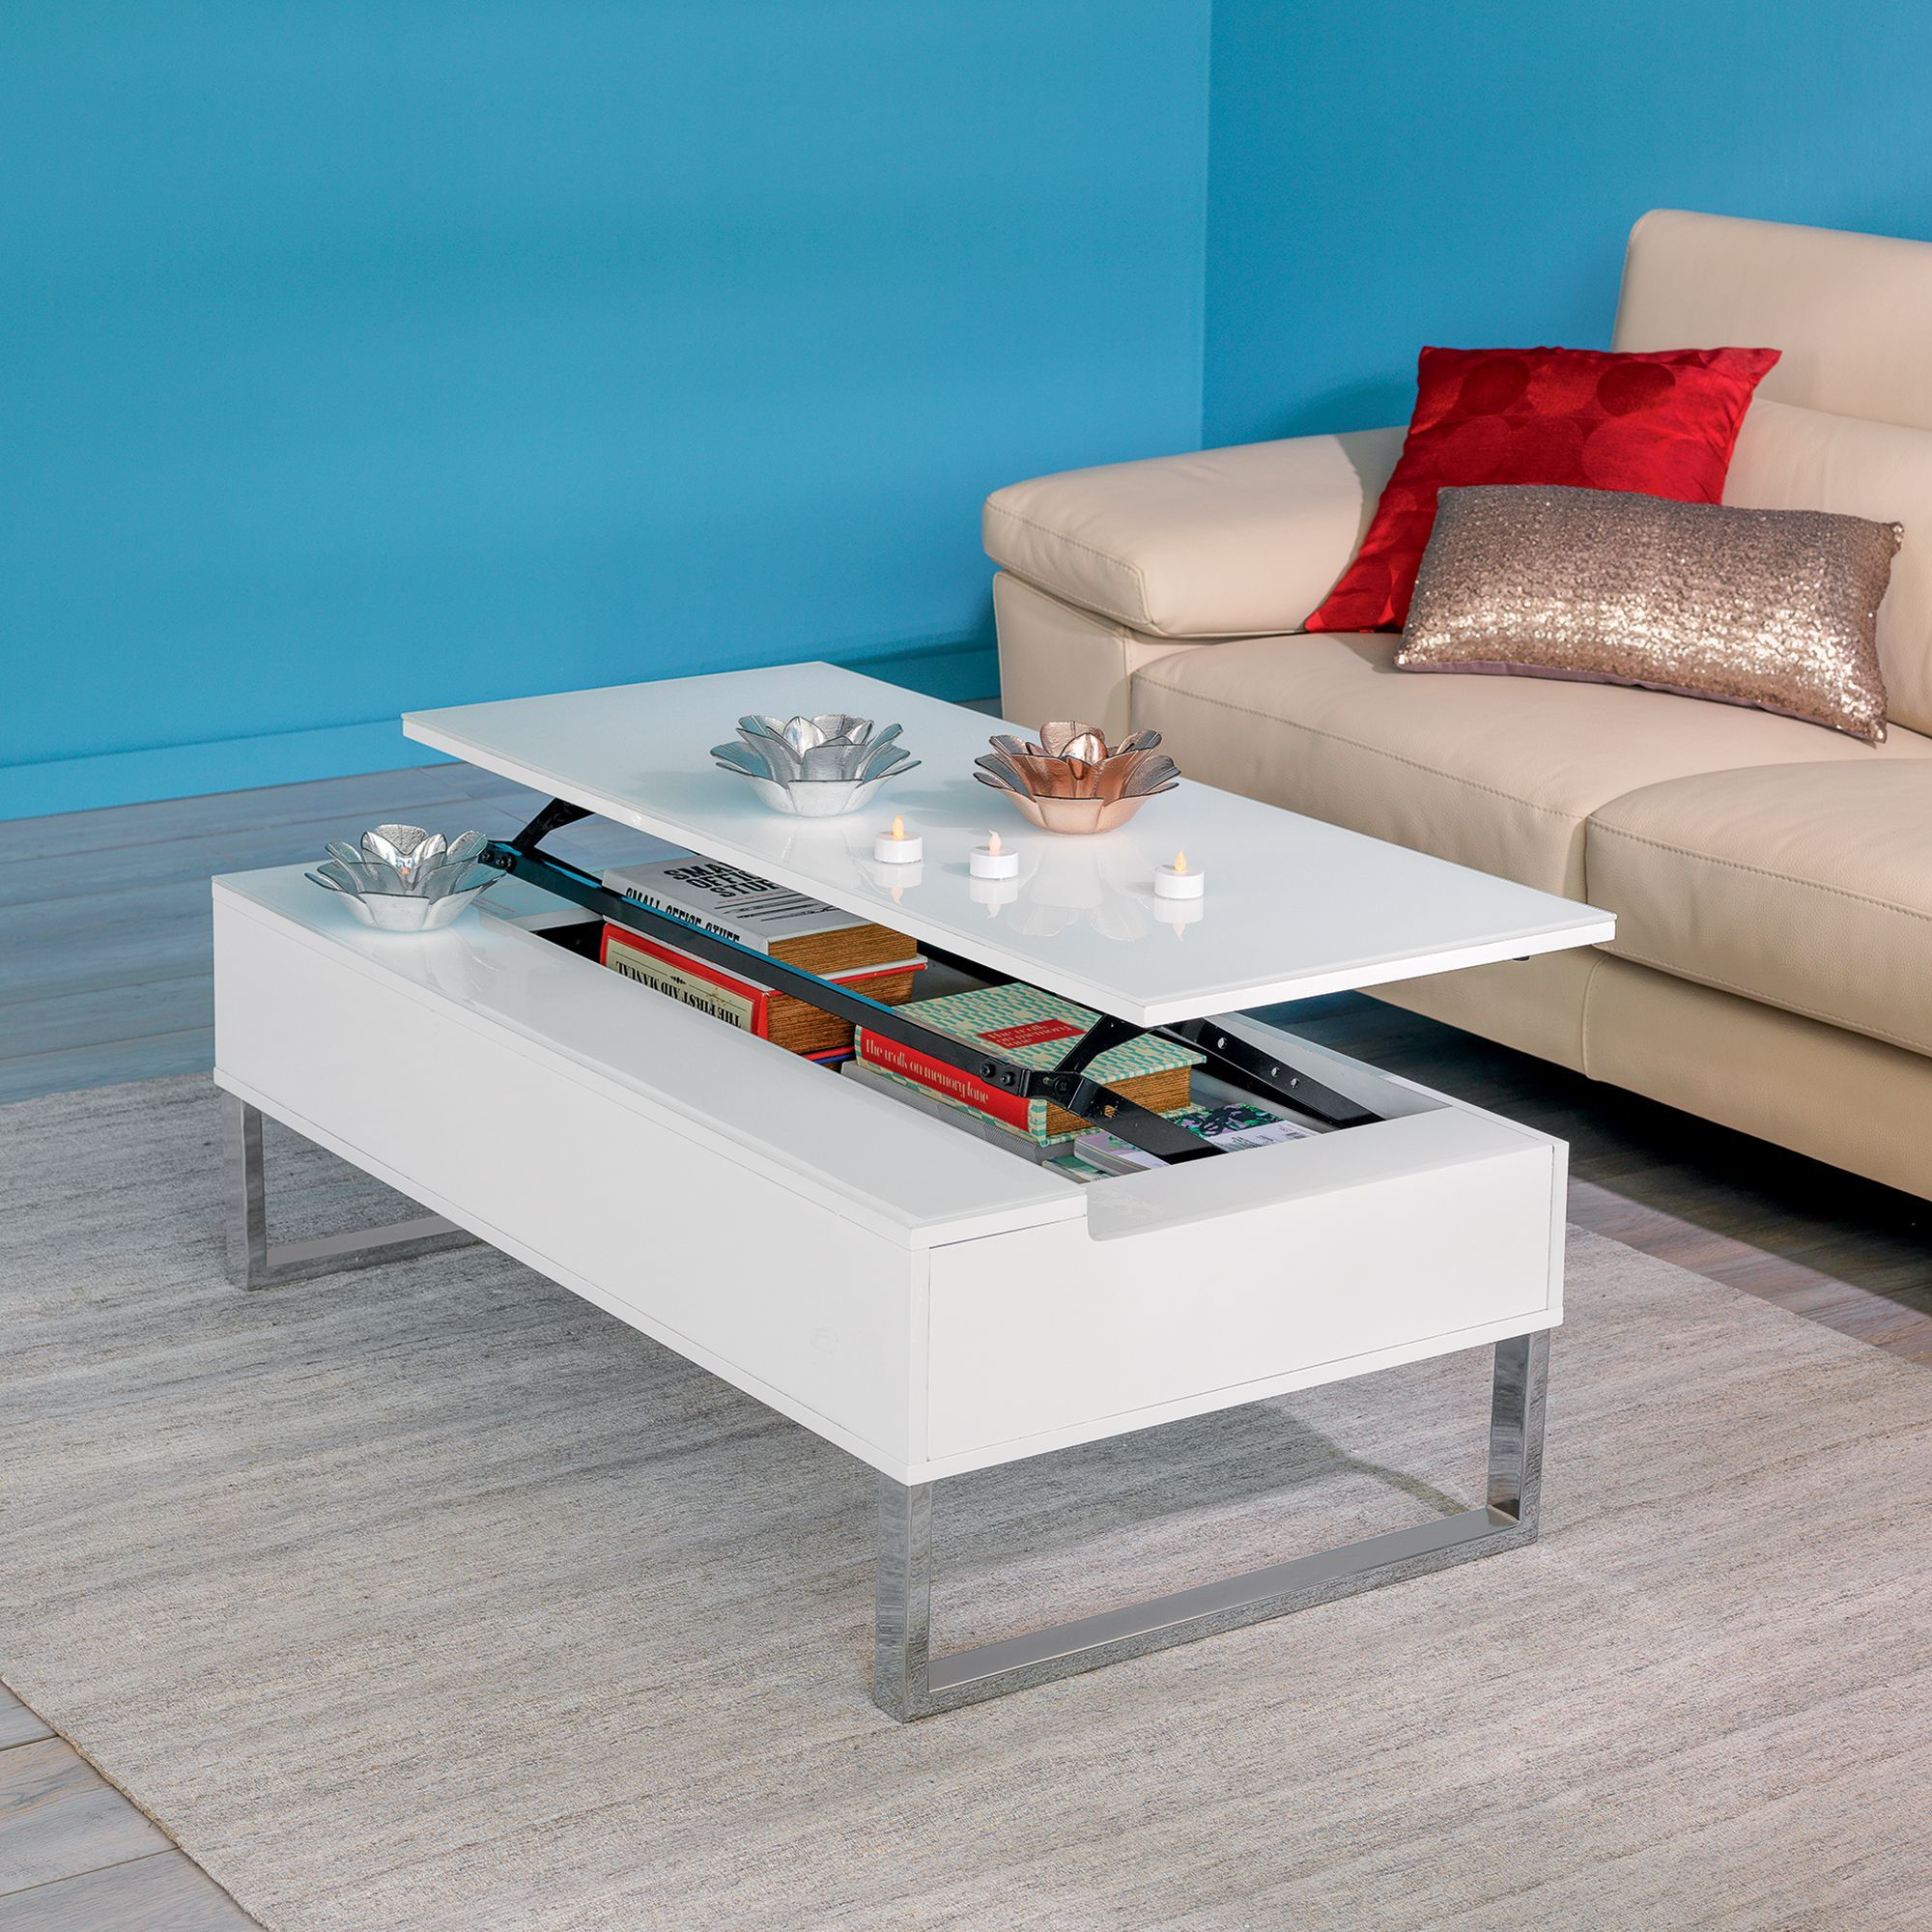 Table Basse Avec Tablette Relevable Blanche Blanc Novy